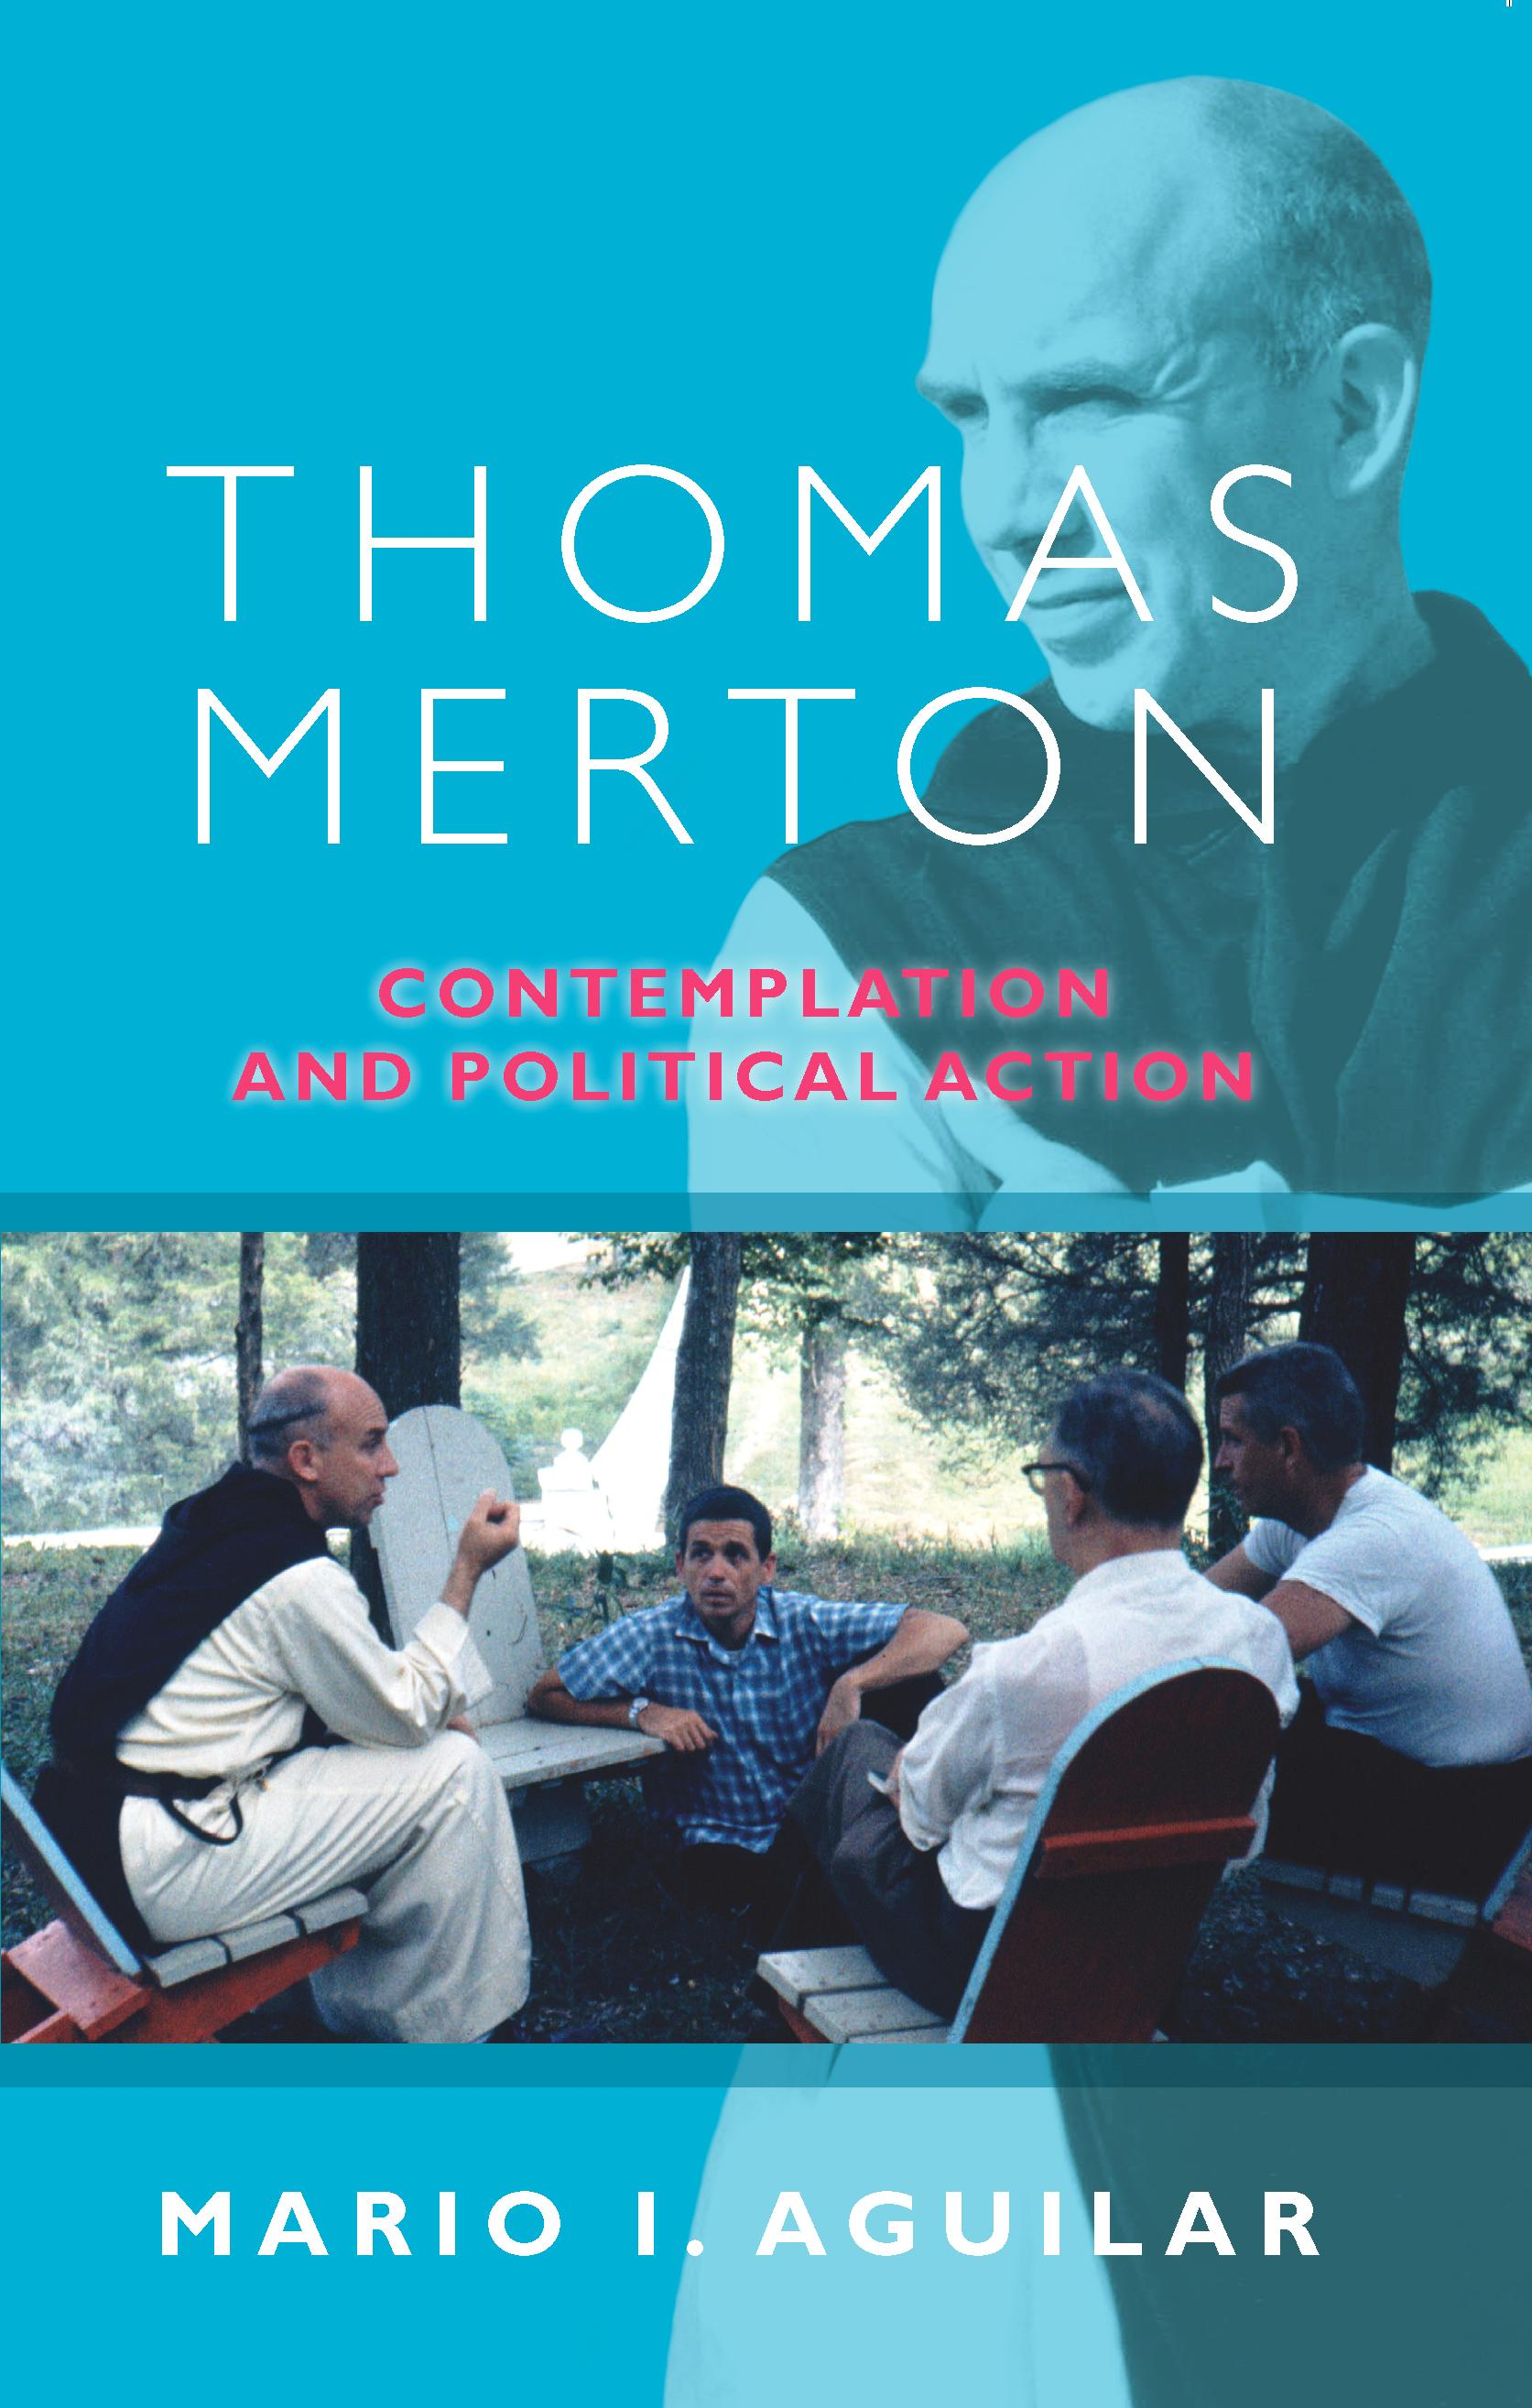 a biography of thomas merton a civil rights activist What a tragedy that thomas merton wasted his what martin luther king was to the civil rights movement and what //wwwbritannicacom/biography/aldous-huxley.